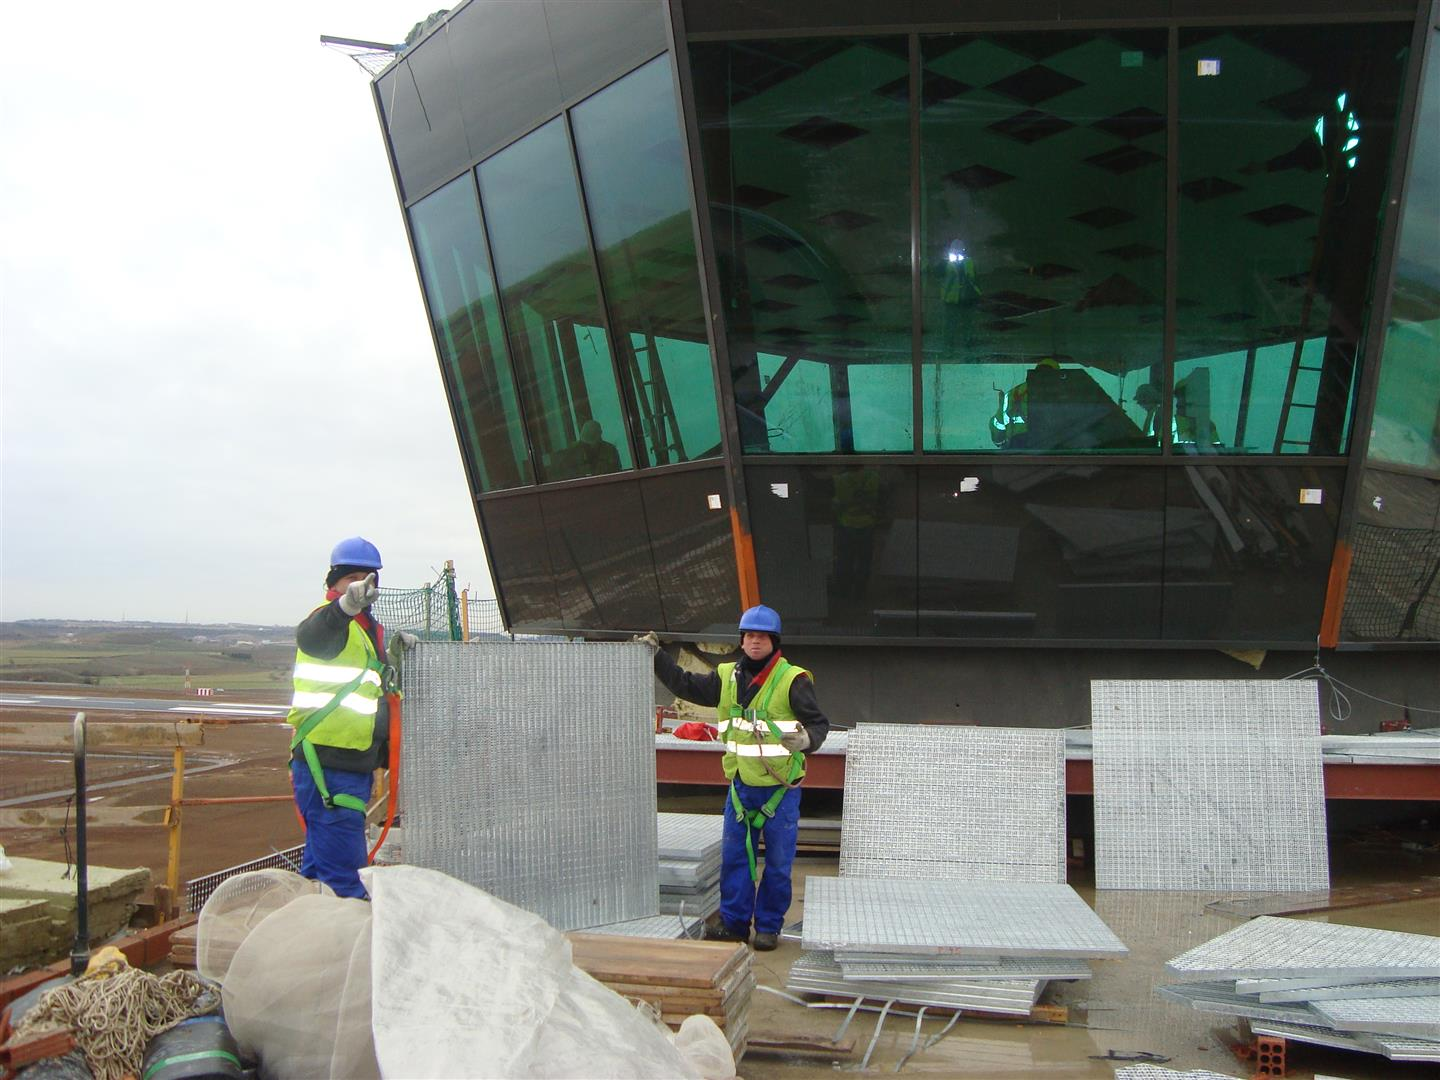 FOTOS AEROPORT 015